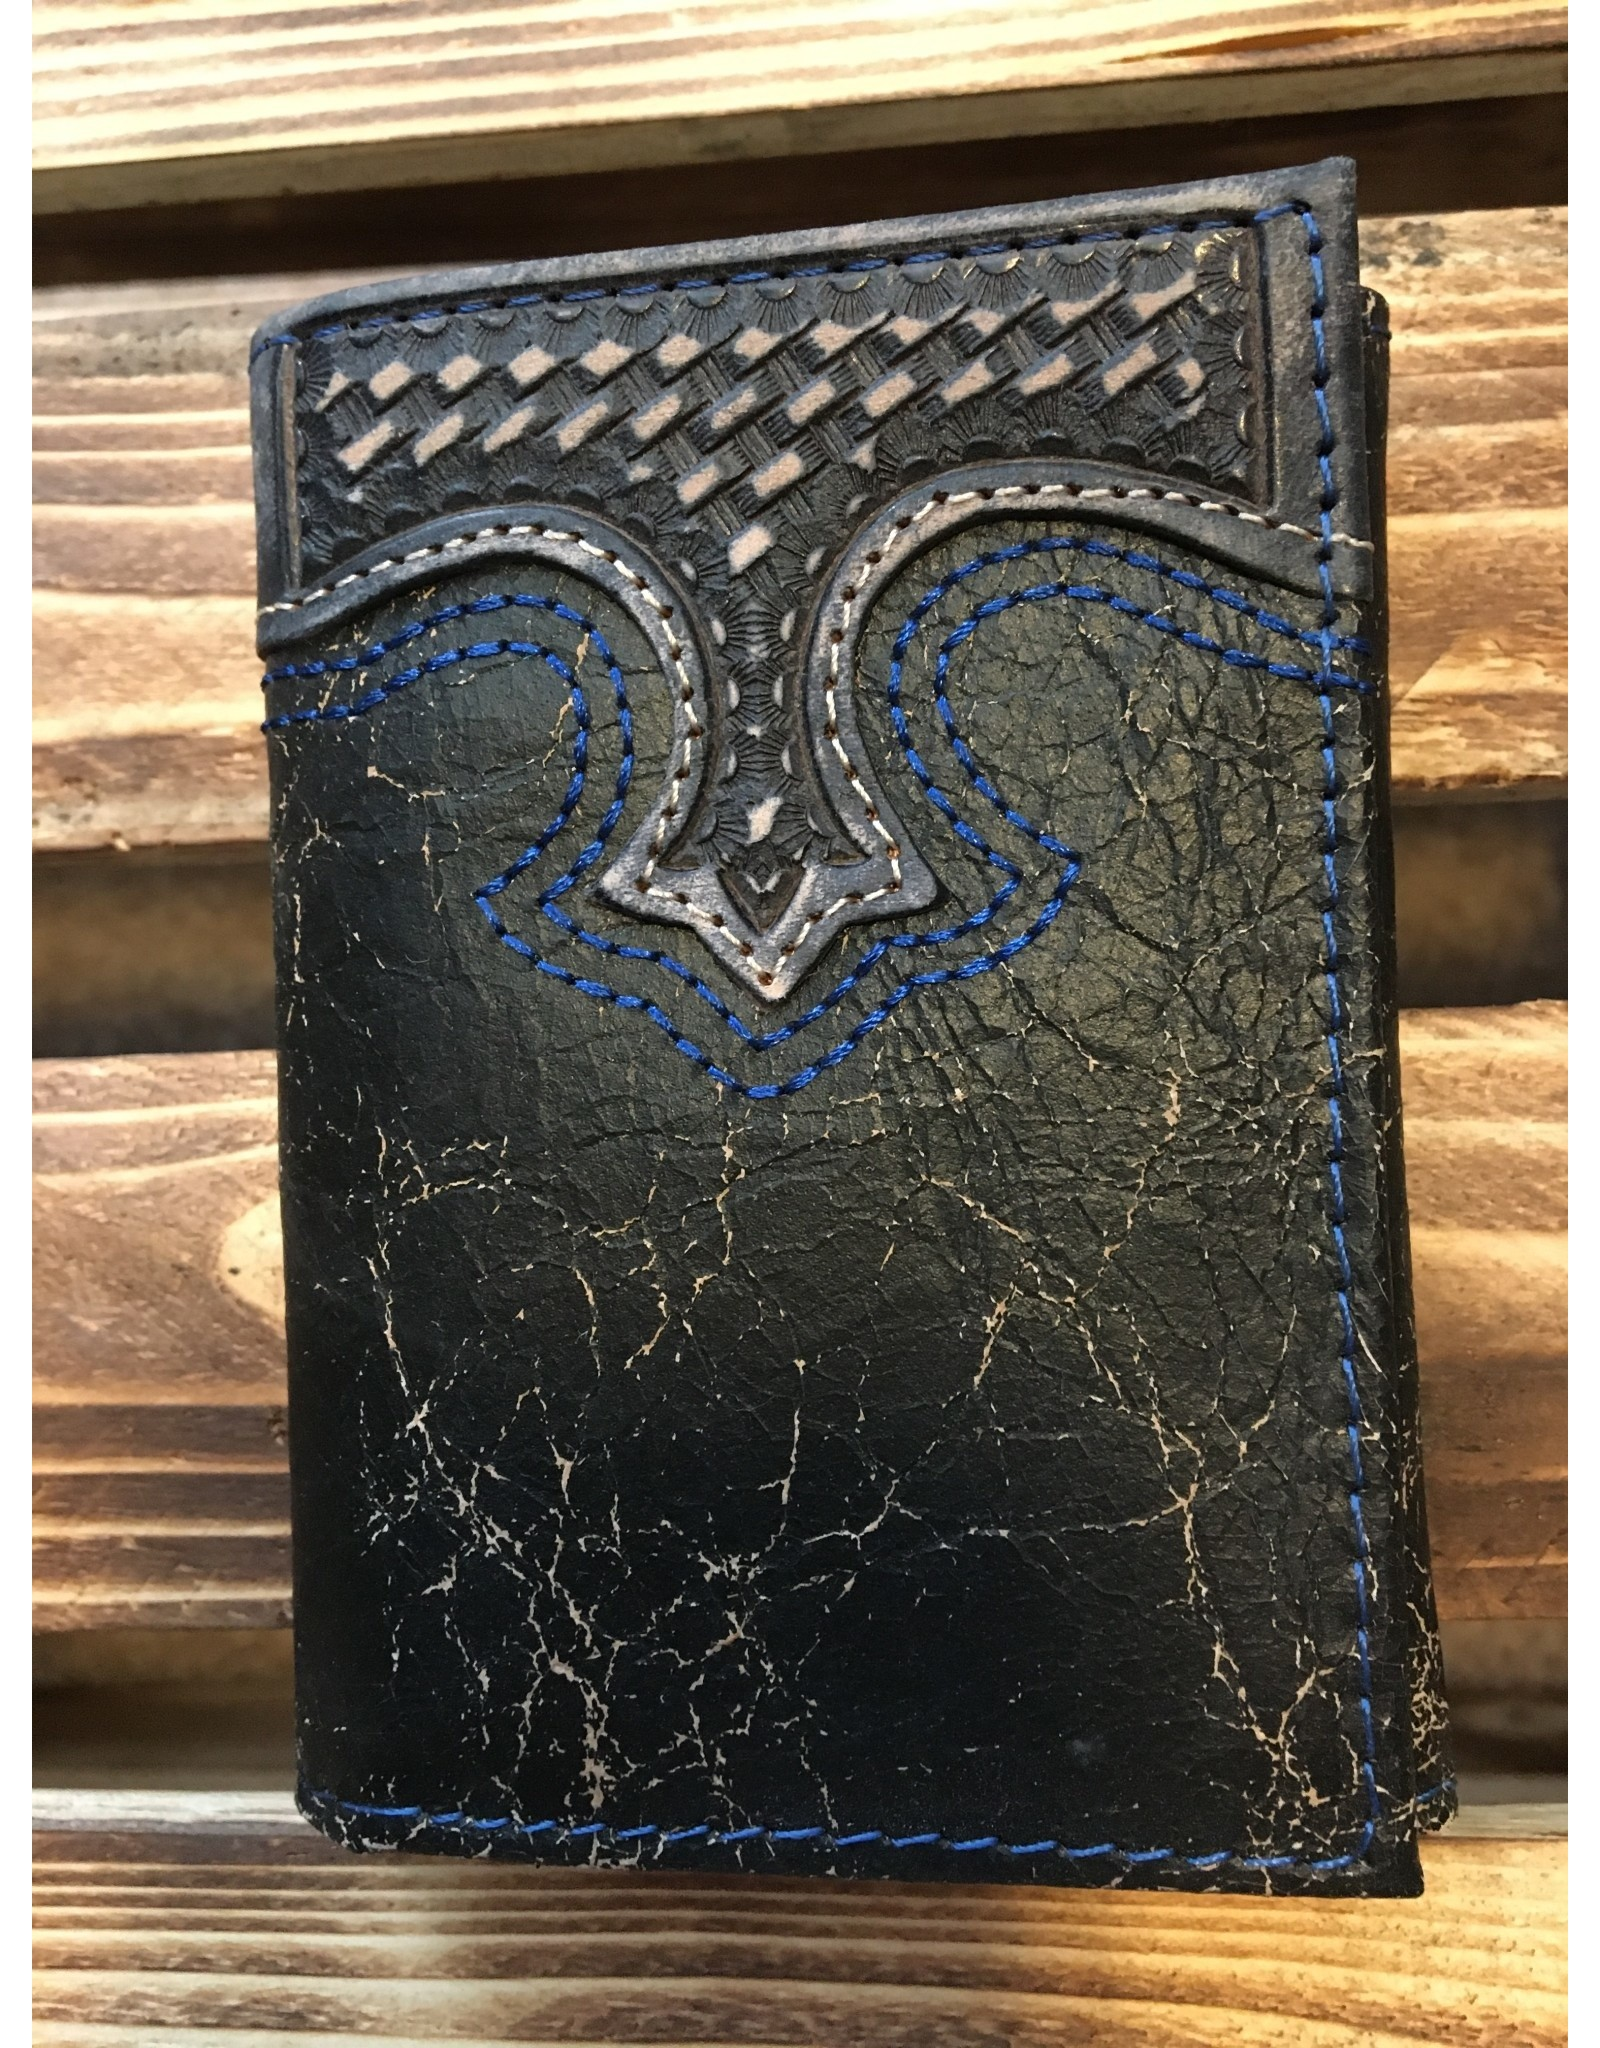 3D TRI-FOLD EMBOSSED DISTRESSED BLACK LEATHER WALLET